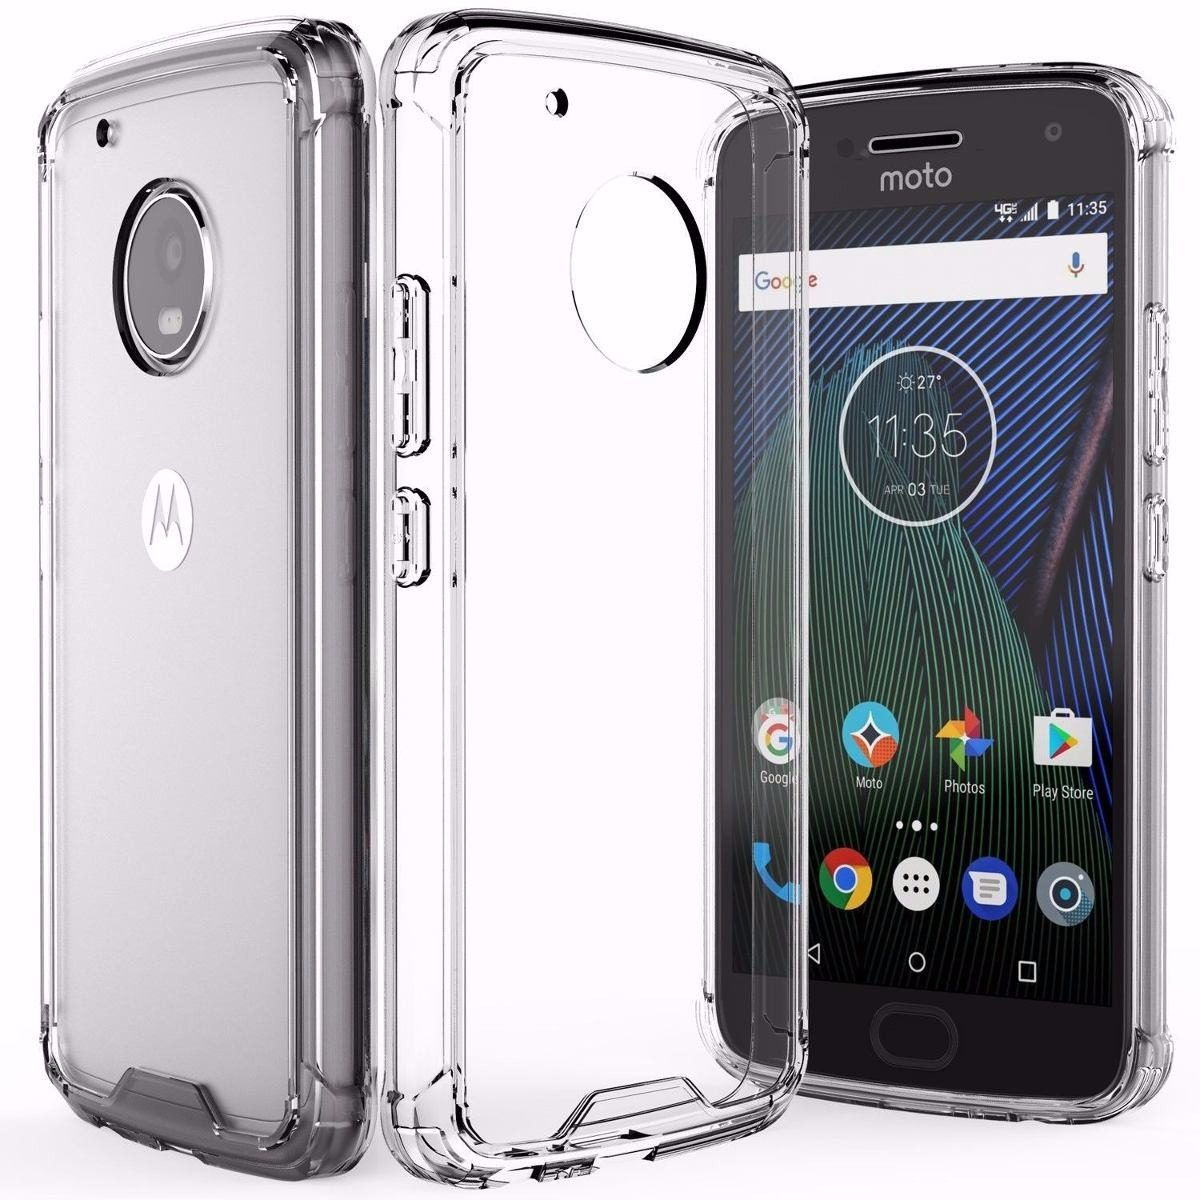 Kit 30 Capinha Anti Shock Transparente Lançamento 2018/2019 K11, Moto G7, G7 Play, J4 Core, J6 Plus